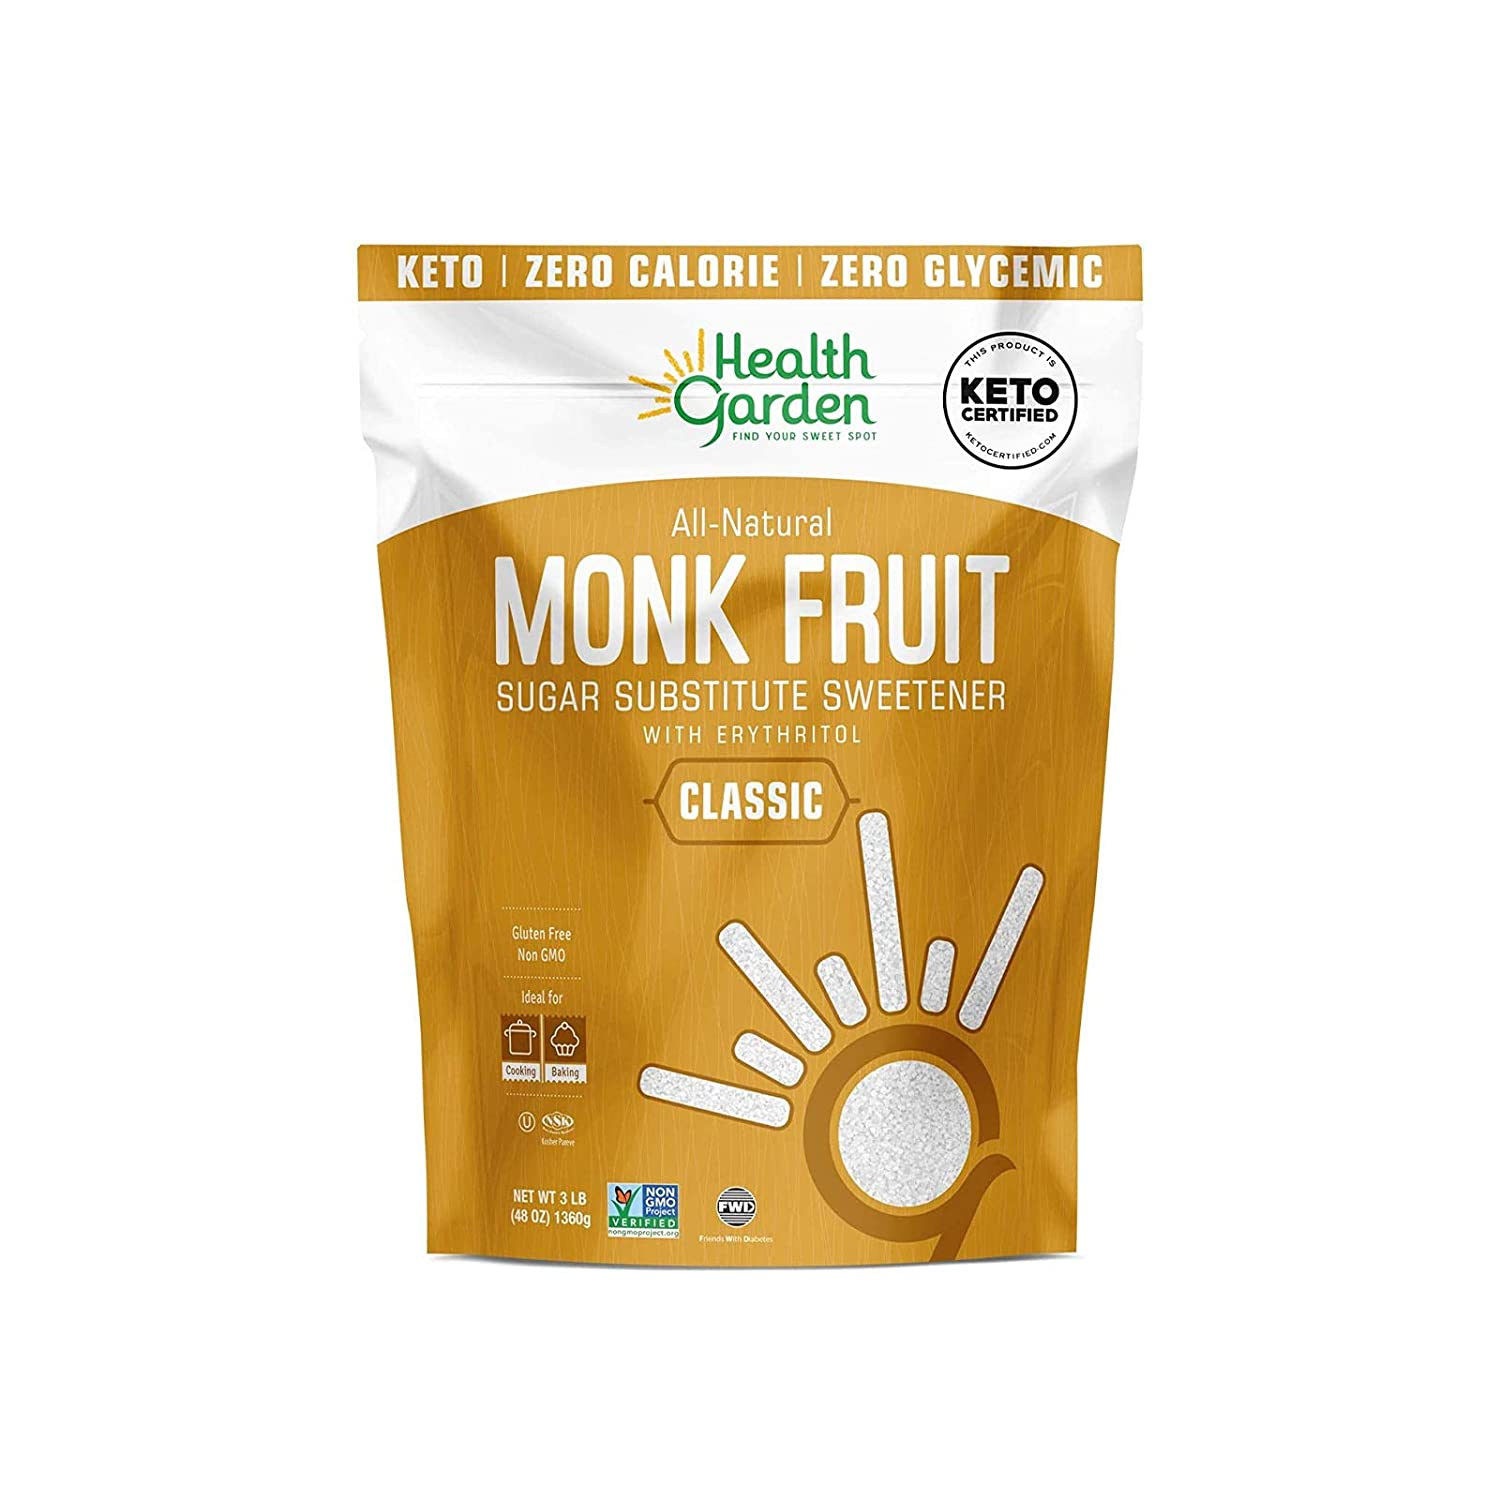 Health Garden Monk Fruit Sweetener Classic - Non GMO - Gluten Free - Sugar Substitute - Kosher - Keto Friendly - (3 LB)